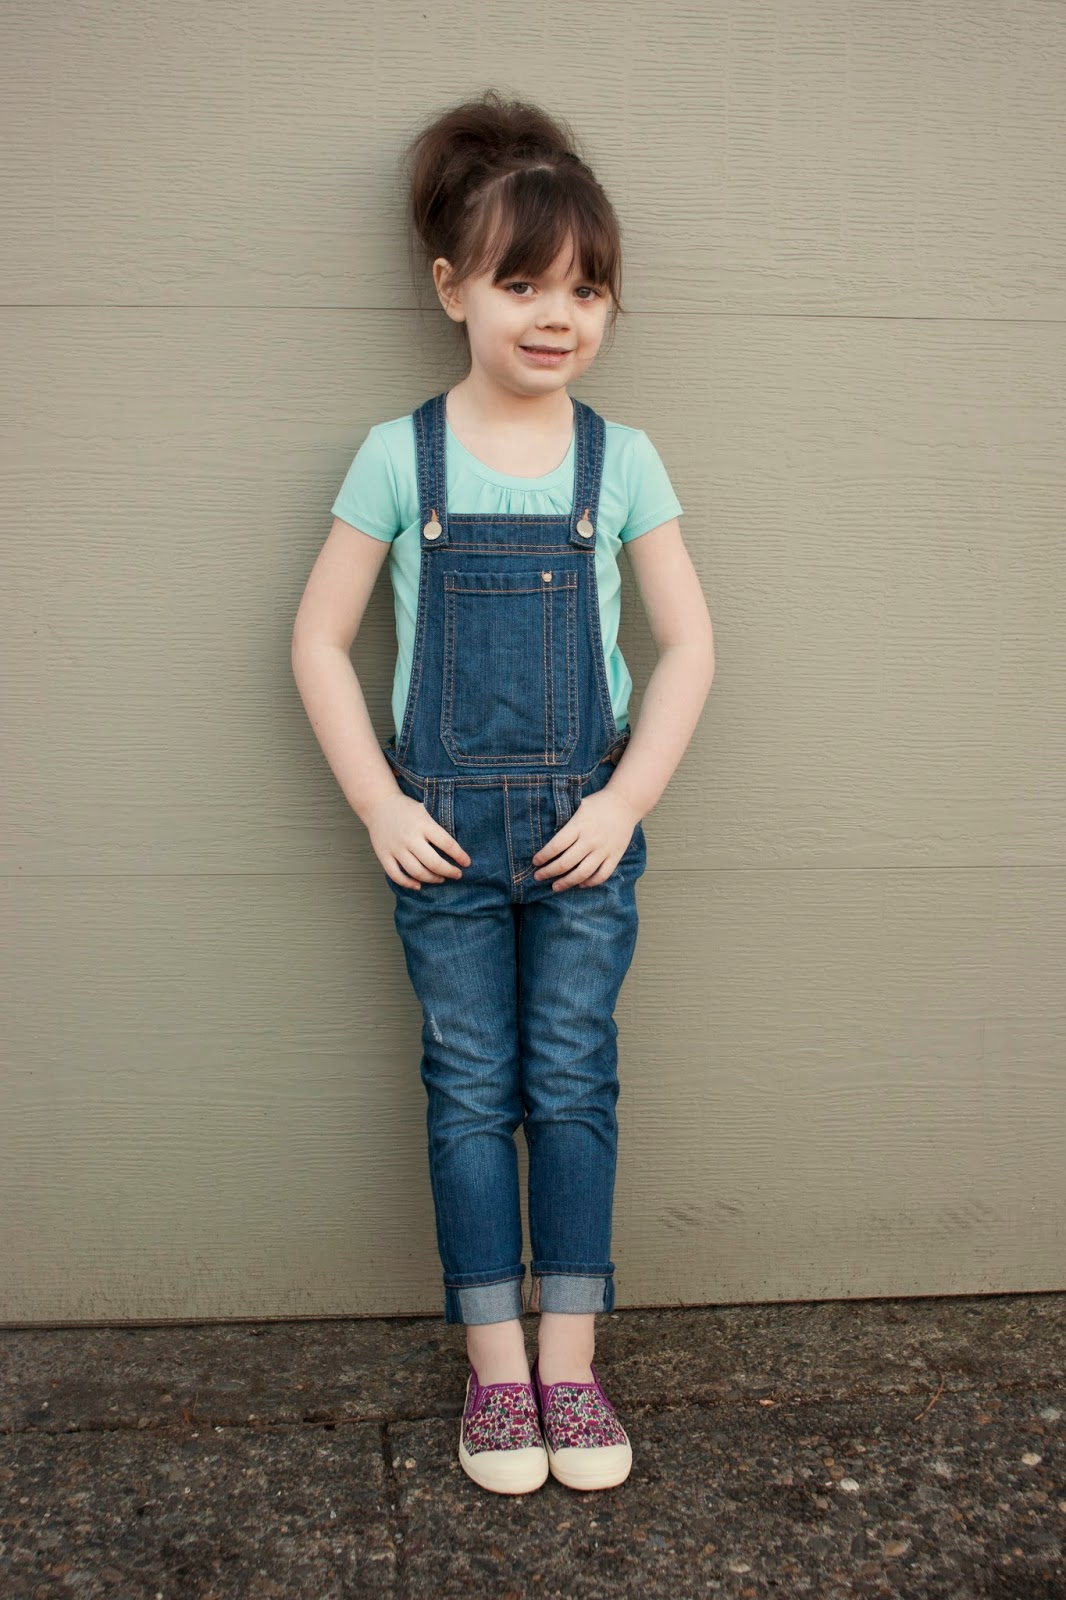 Shop baby girl best overalls at failvideo.ml Shop OshKosh B'gosh, the most trusted name in kids and baby clothes, plus our world famous overalls.